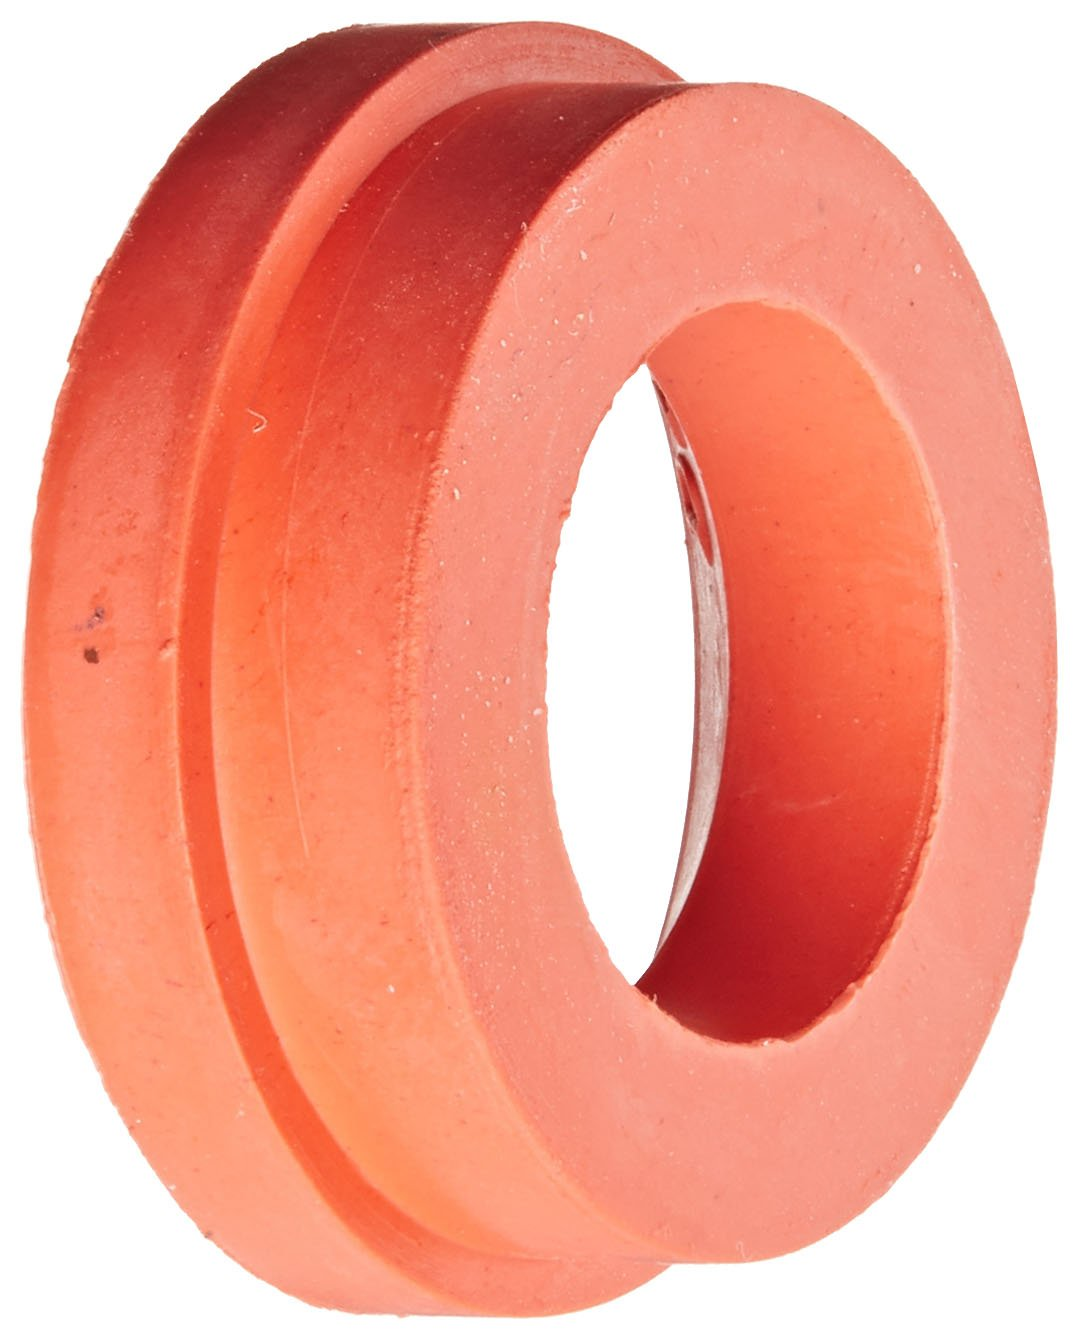 Dixon Valve Coupling Purchase Air King Fitting Red AWS6 Hose Neopre Ranking TOP16